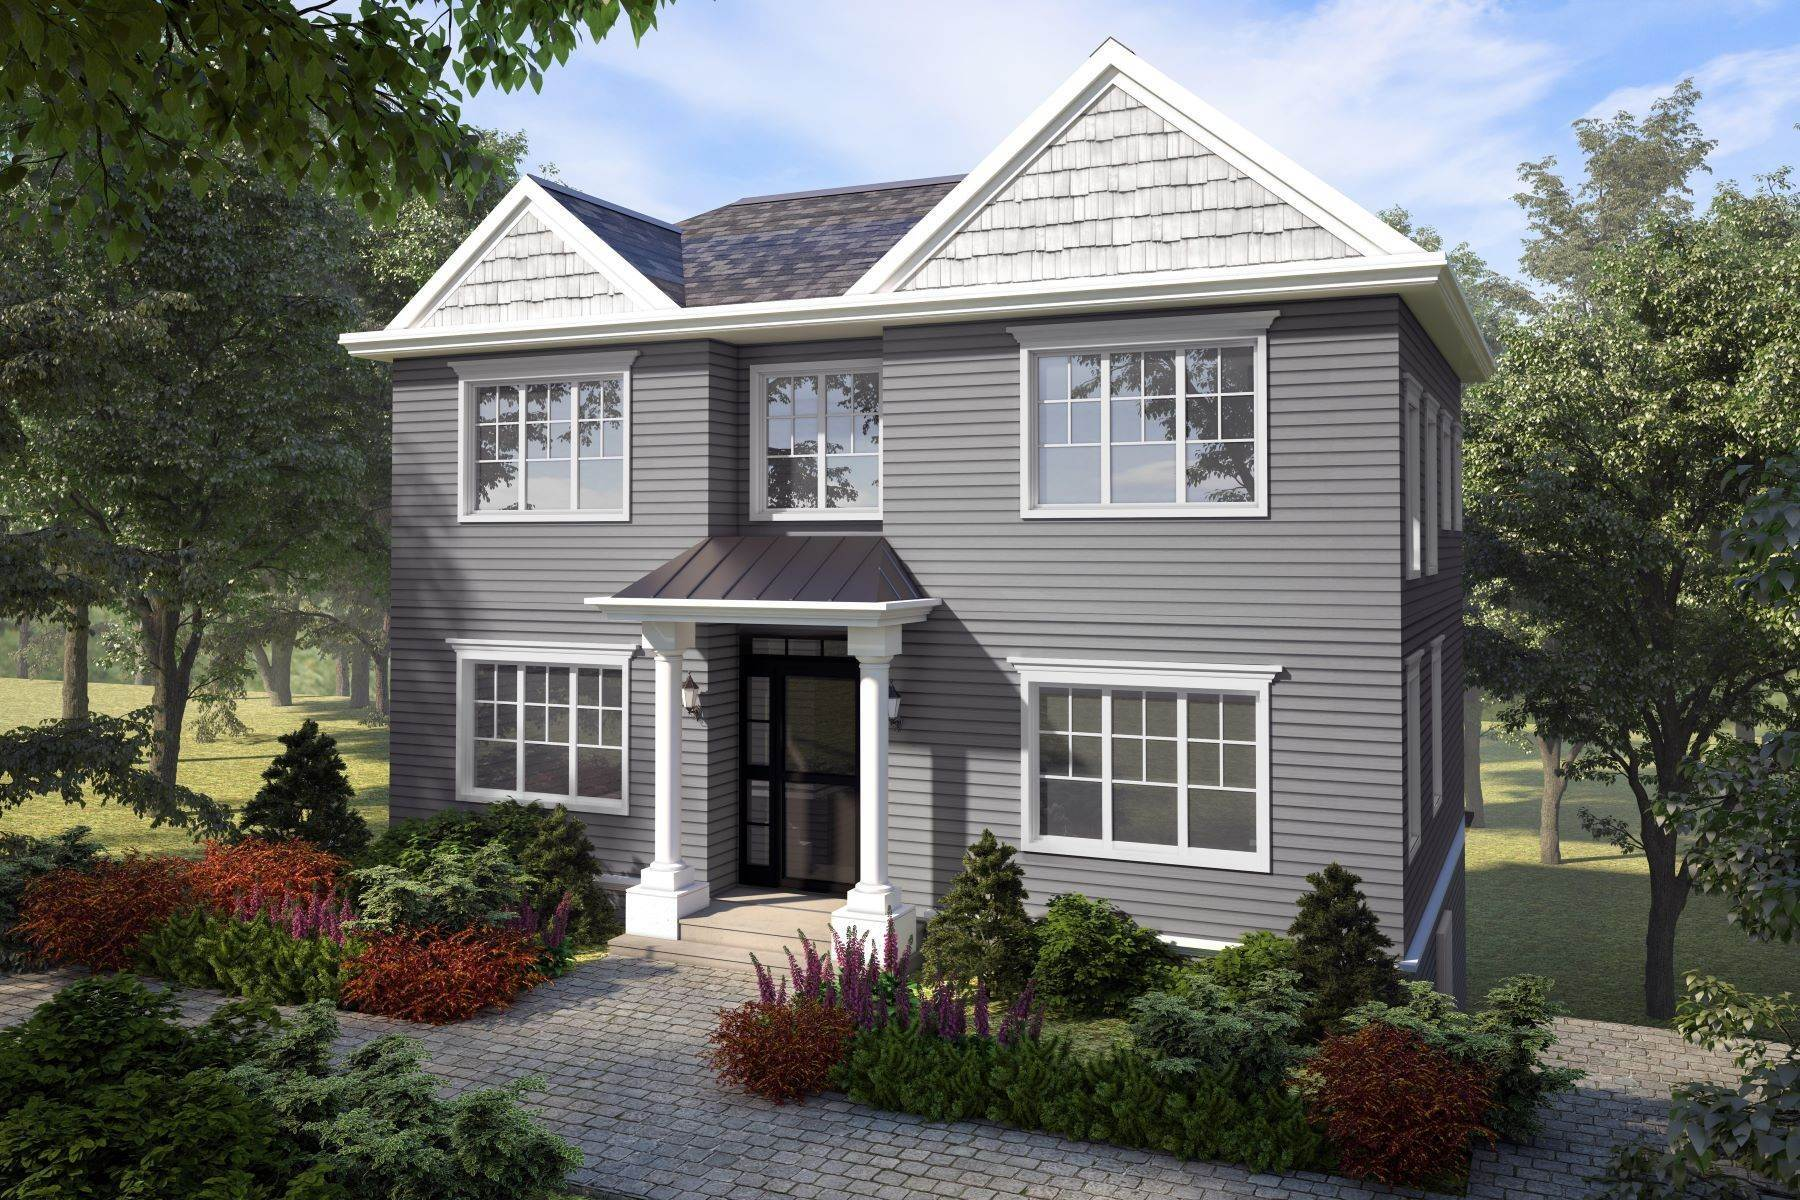 Single Family Homes for Sale at 575 Lot #5 King Street, LOT#5 Port Chester, New York 10573 United States